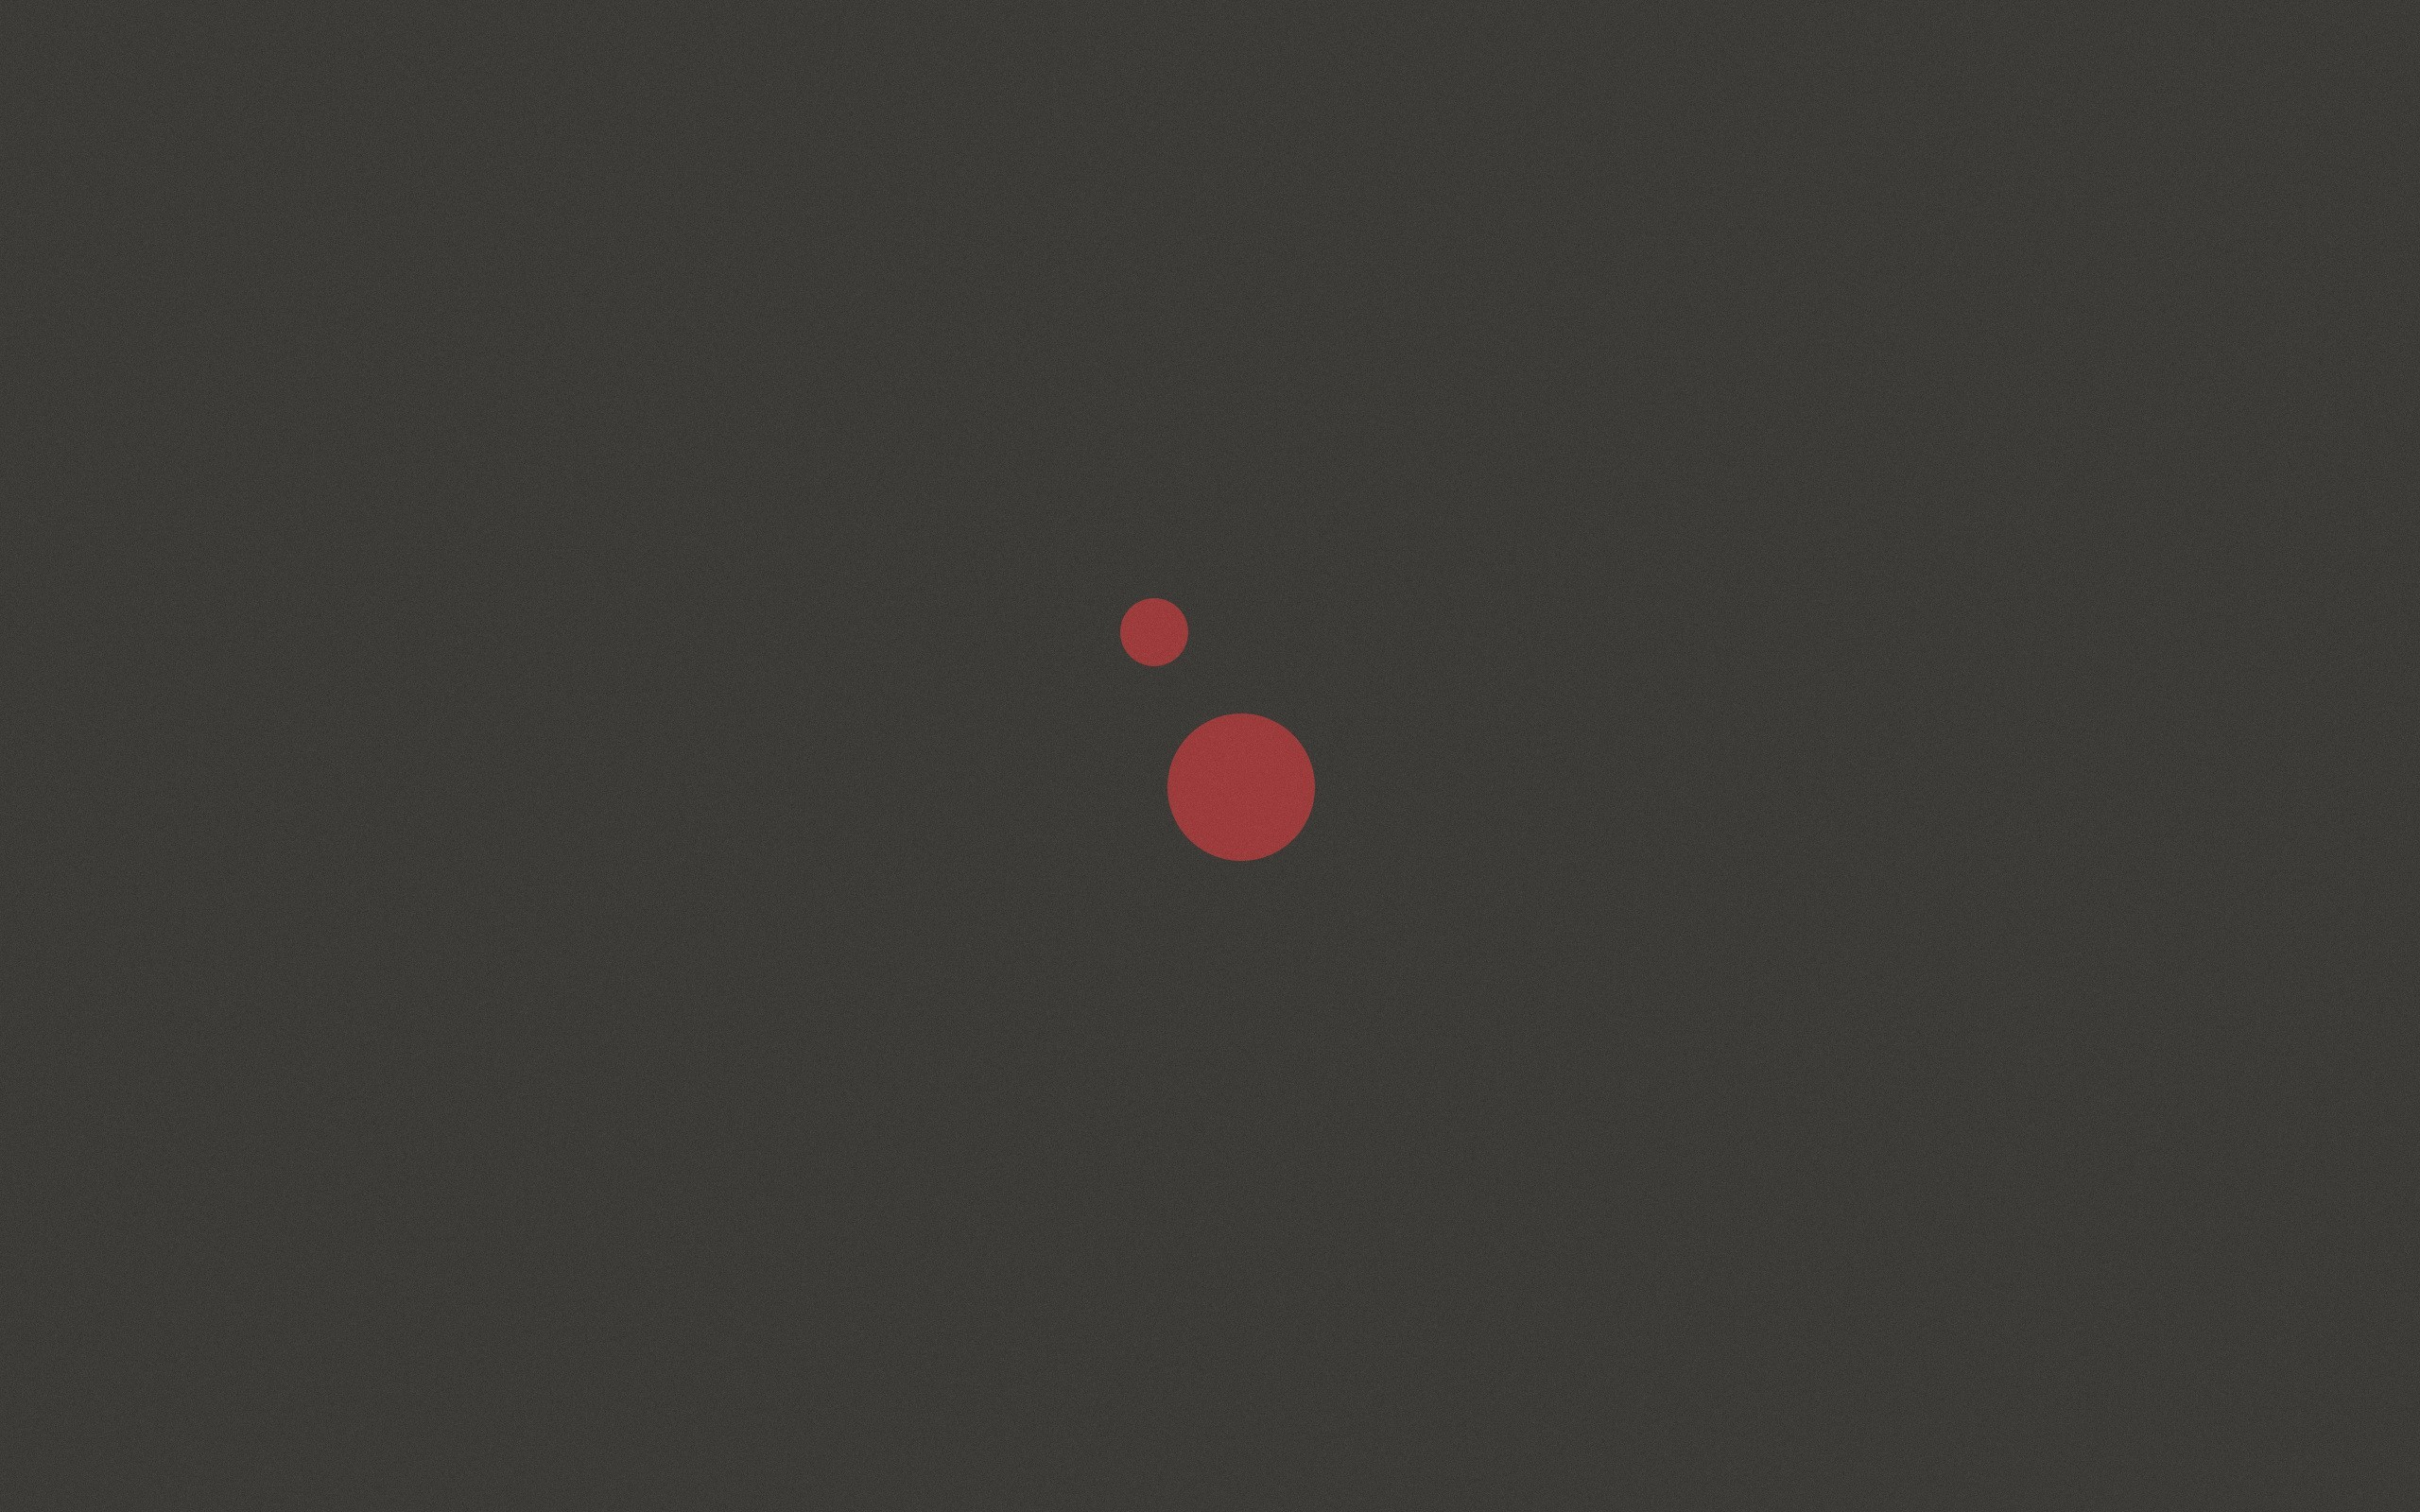 2560×1440 Pink Dots on Gray Background